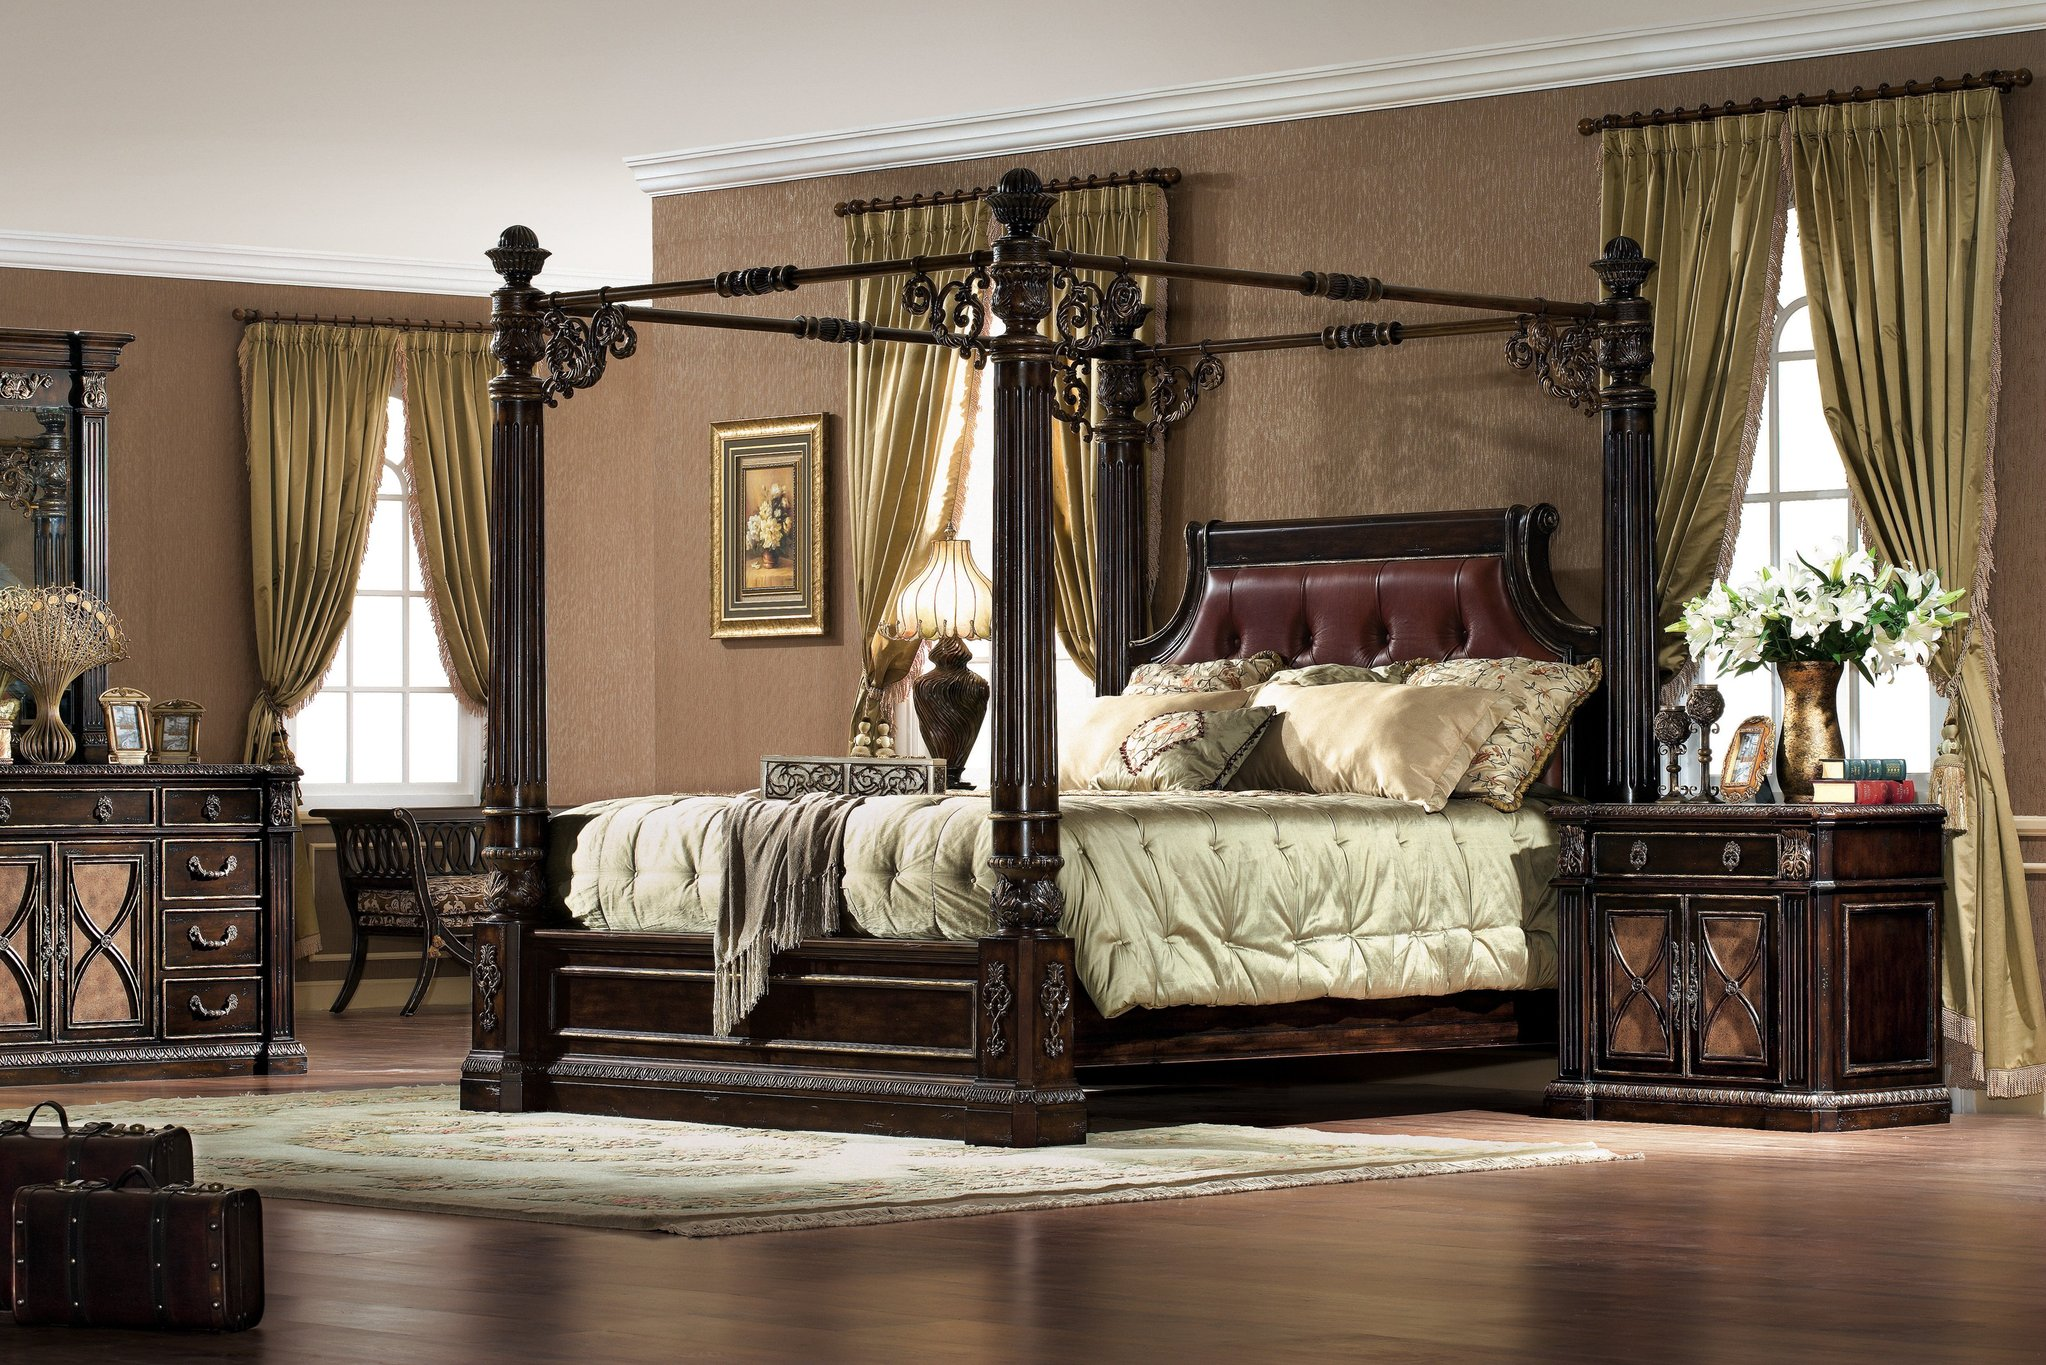 Excellent king canopy bed for classic bedroom ideas with king size canopy bed